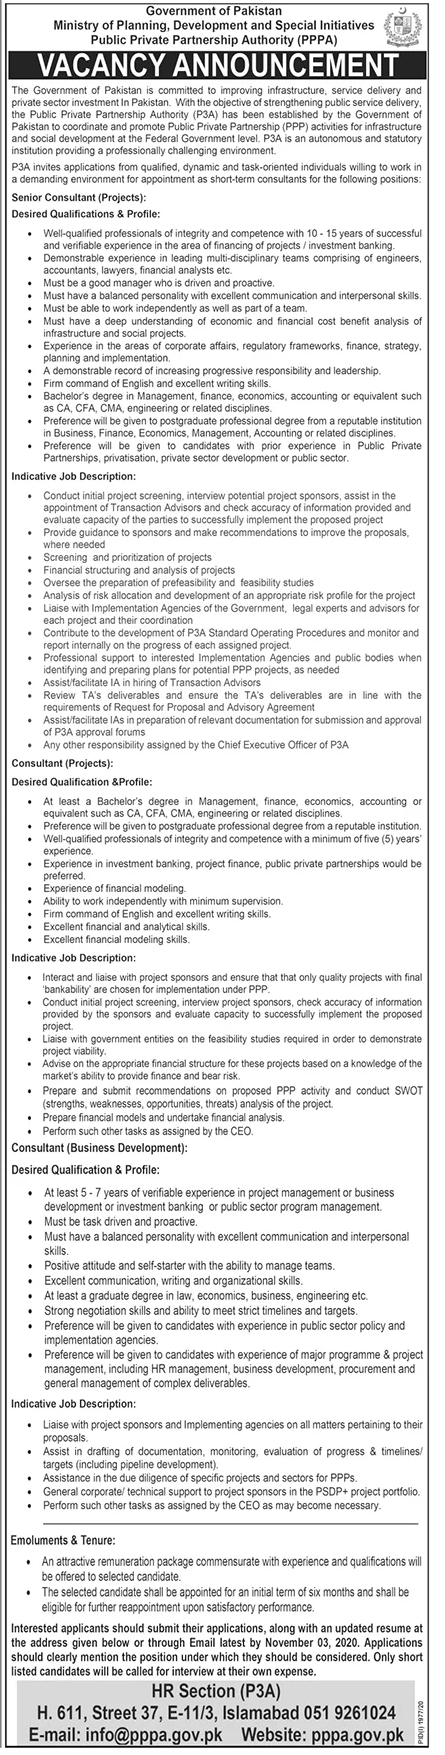 Ministry of Planning Development & Specialist Initiatives Jobs October 2020